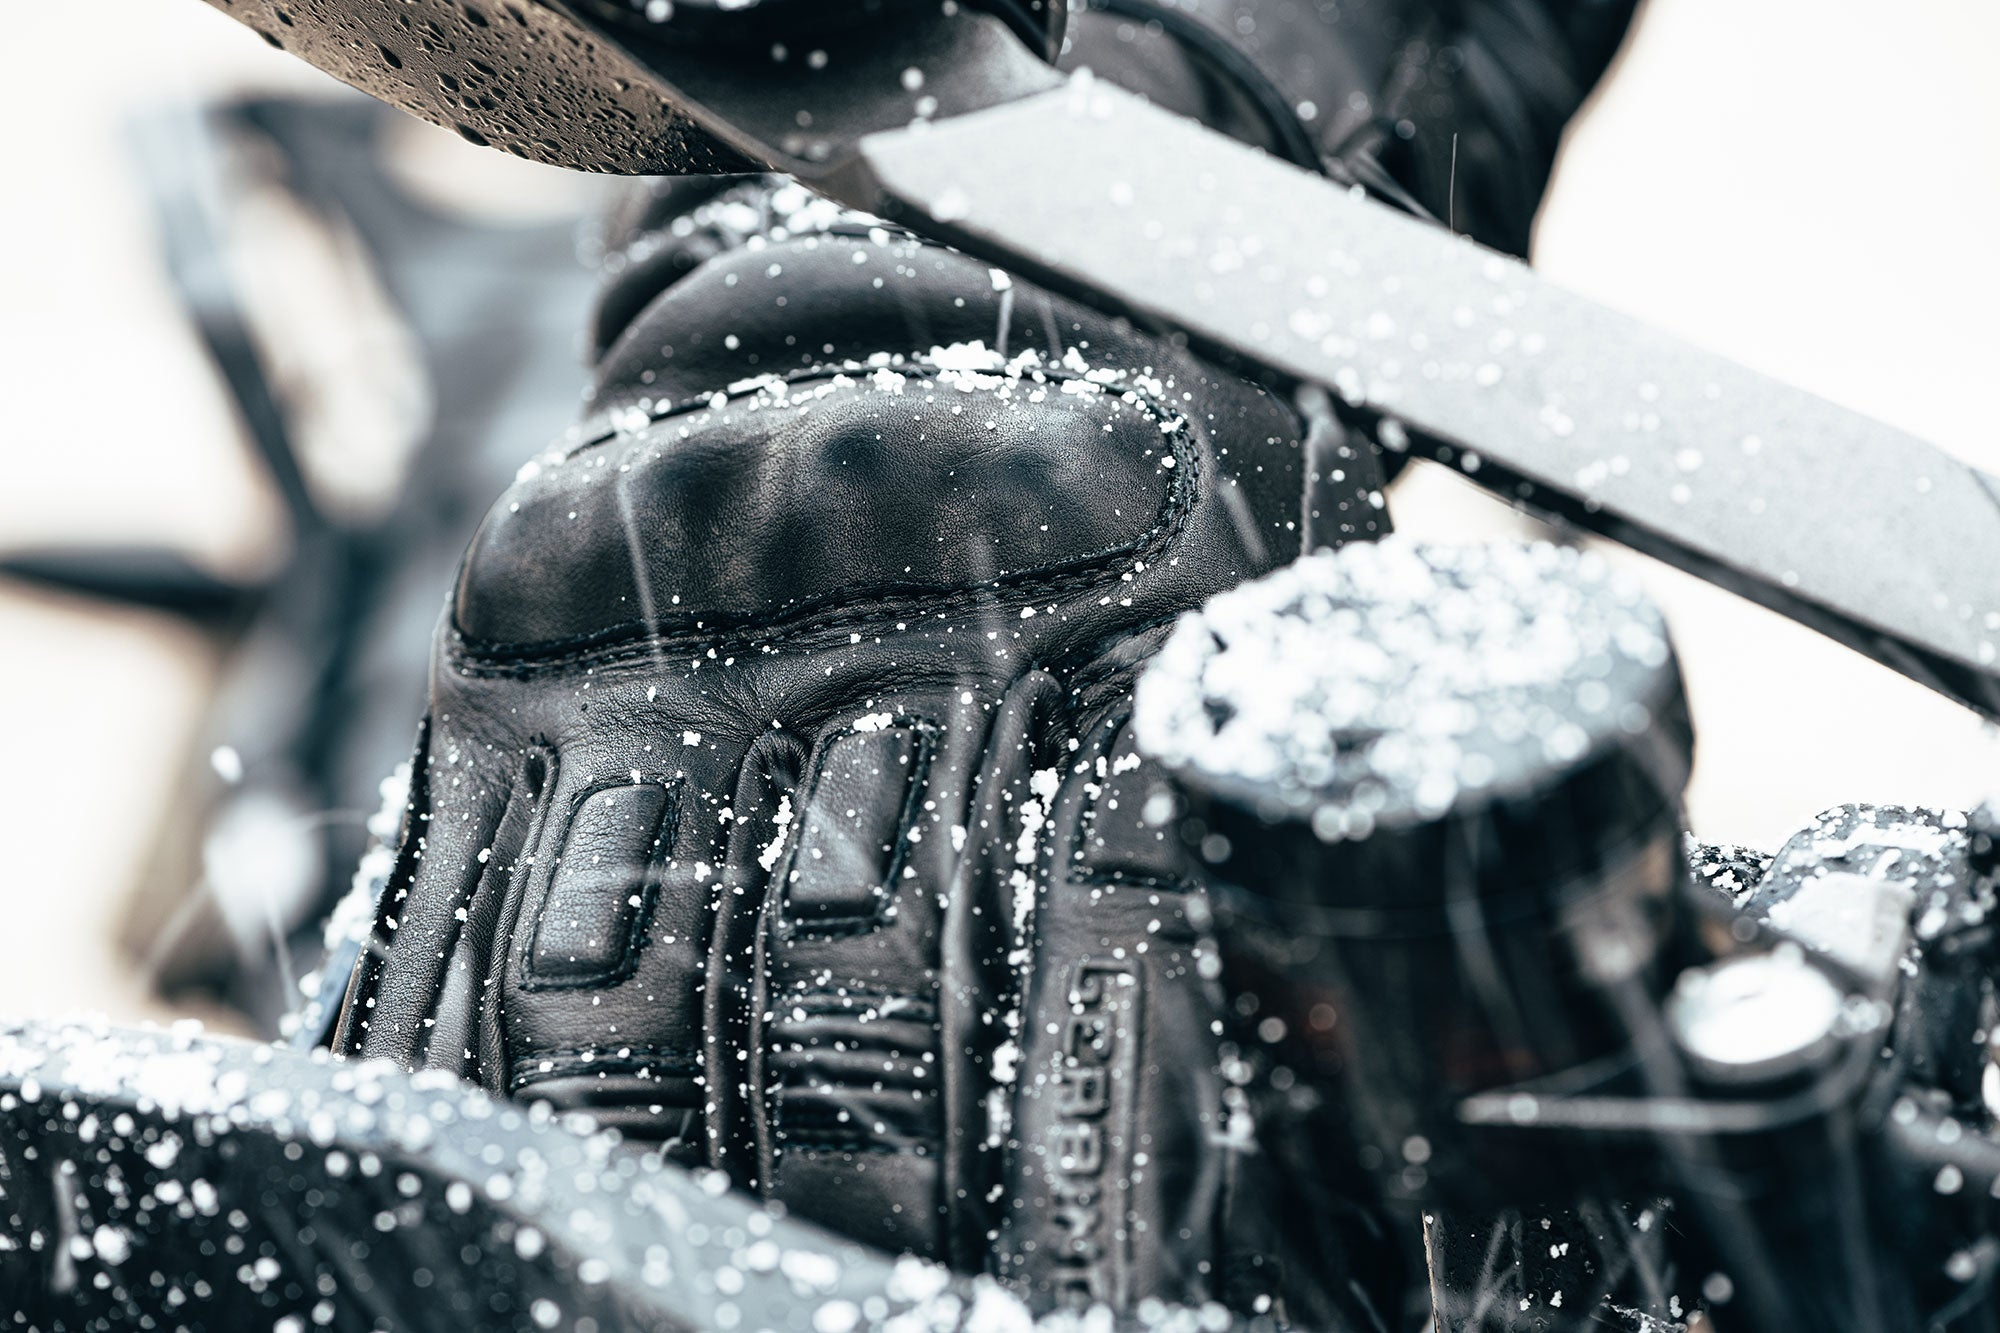 Heated Motorcycle Gloves by Gerbing - The XRL version